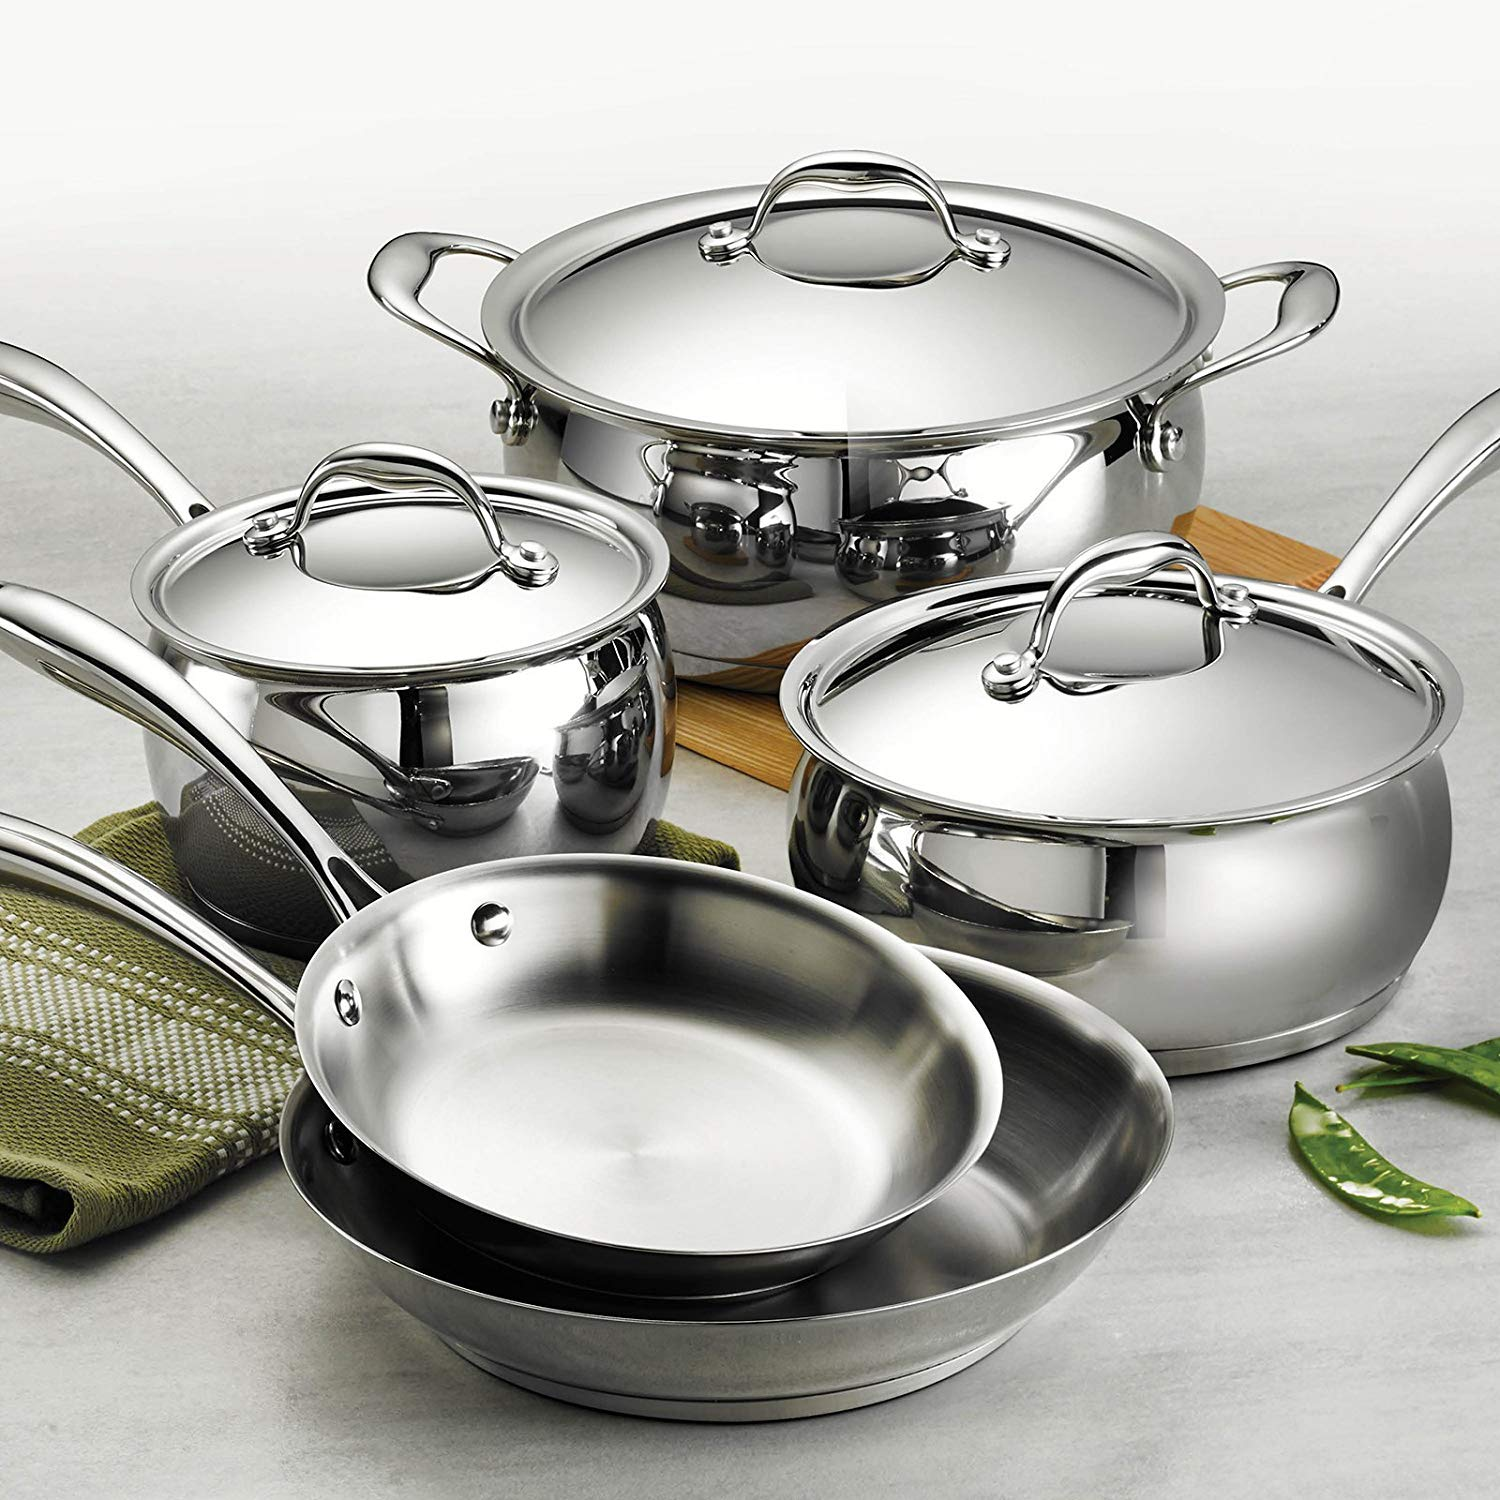 Things You Should Know about Stainless Steel Cookware